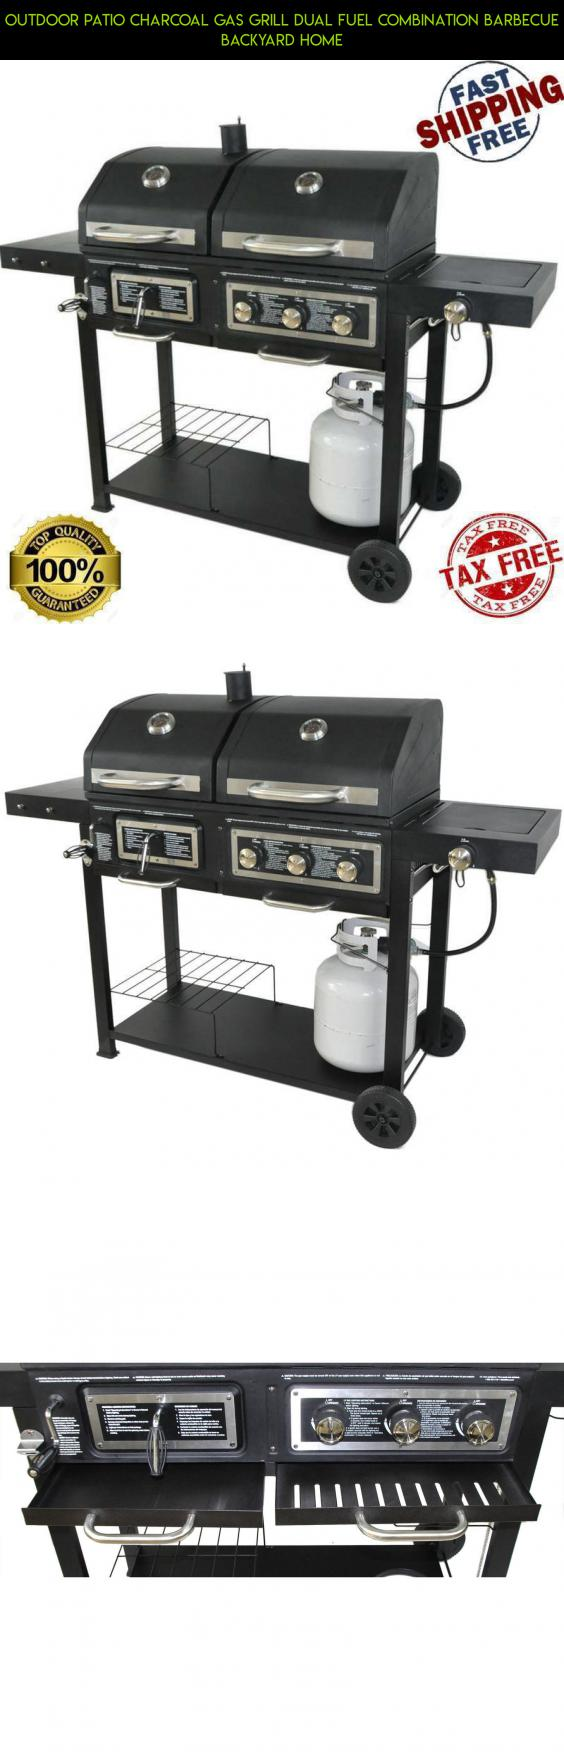 outdoor patio charcoal gas grill dual fuel combination barbecue